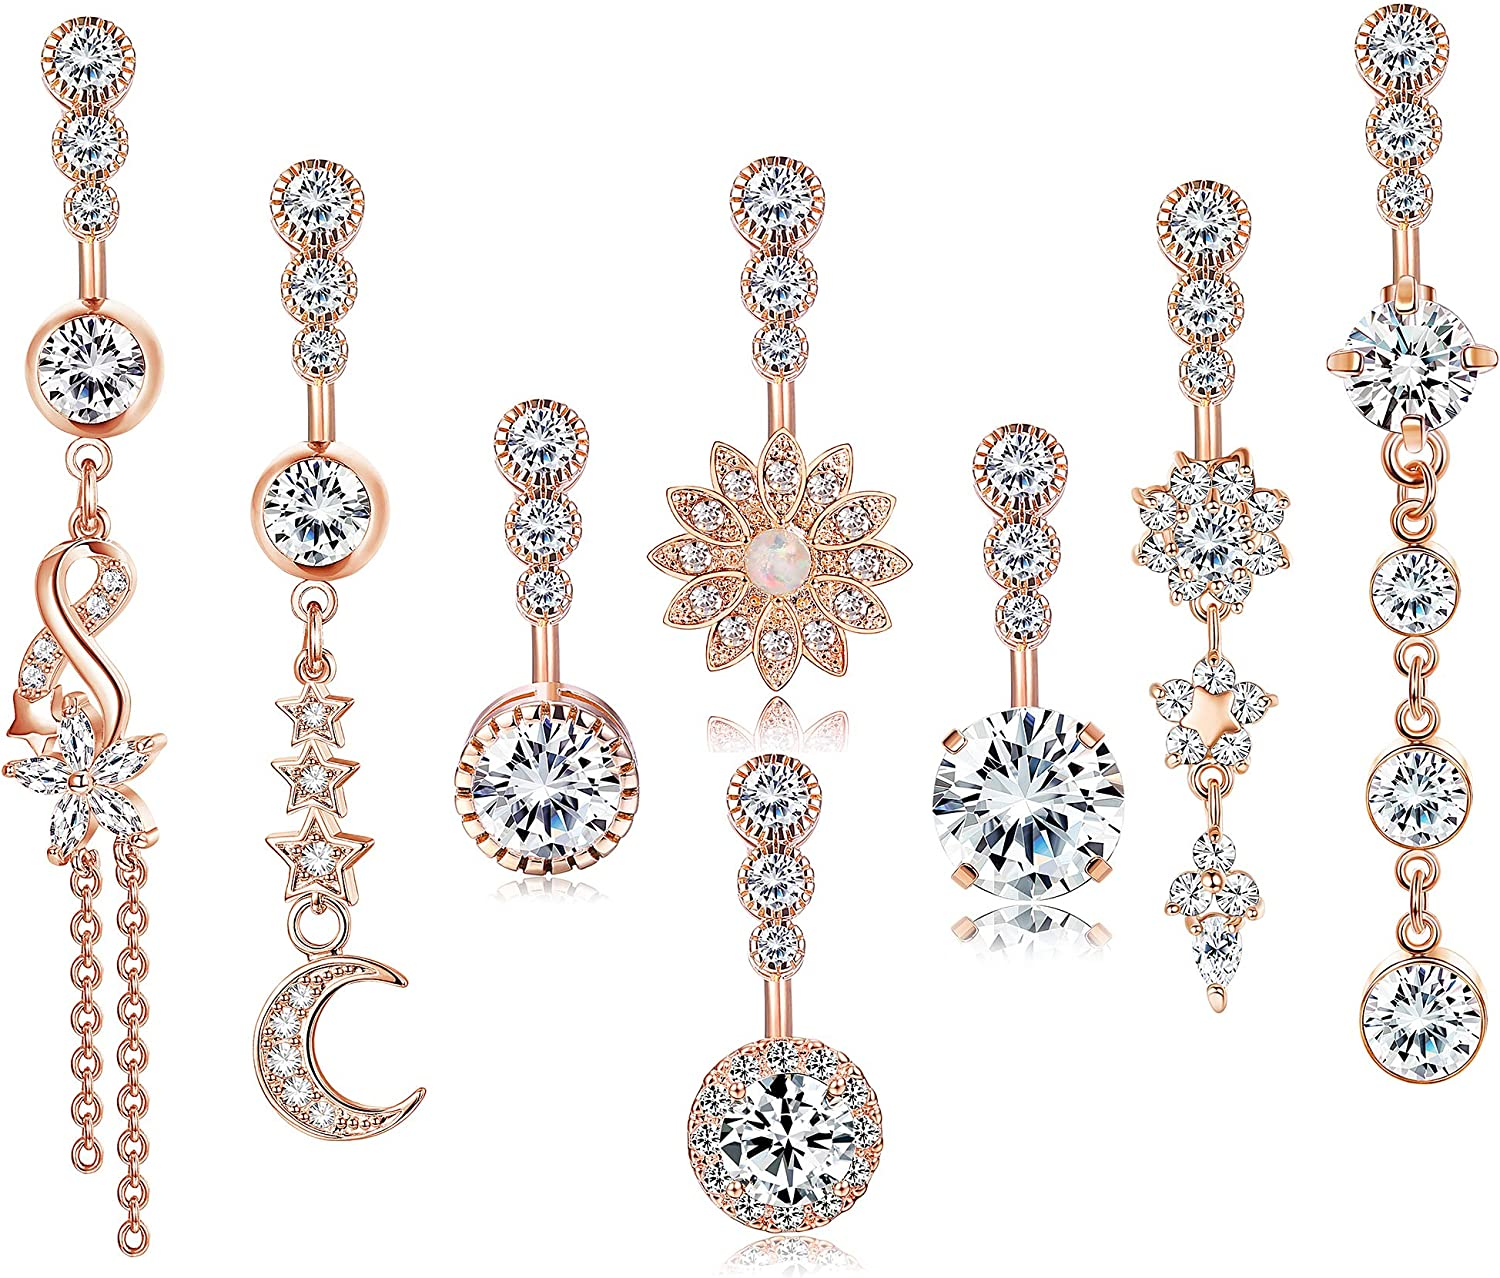 LOLIAS 14G 316L Surgical Steel Dangle Belly Button Rings for Women Clear CZ Navel Rings Belly Rings Belly Piercing Jewelry 8Pcs